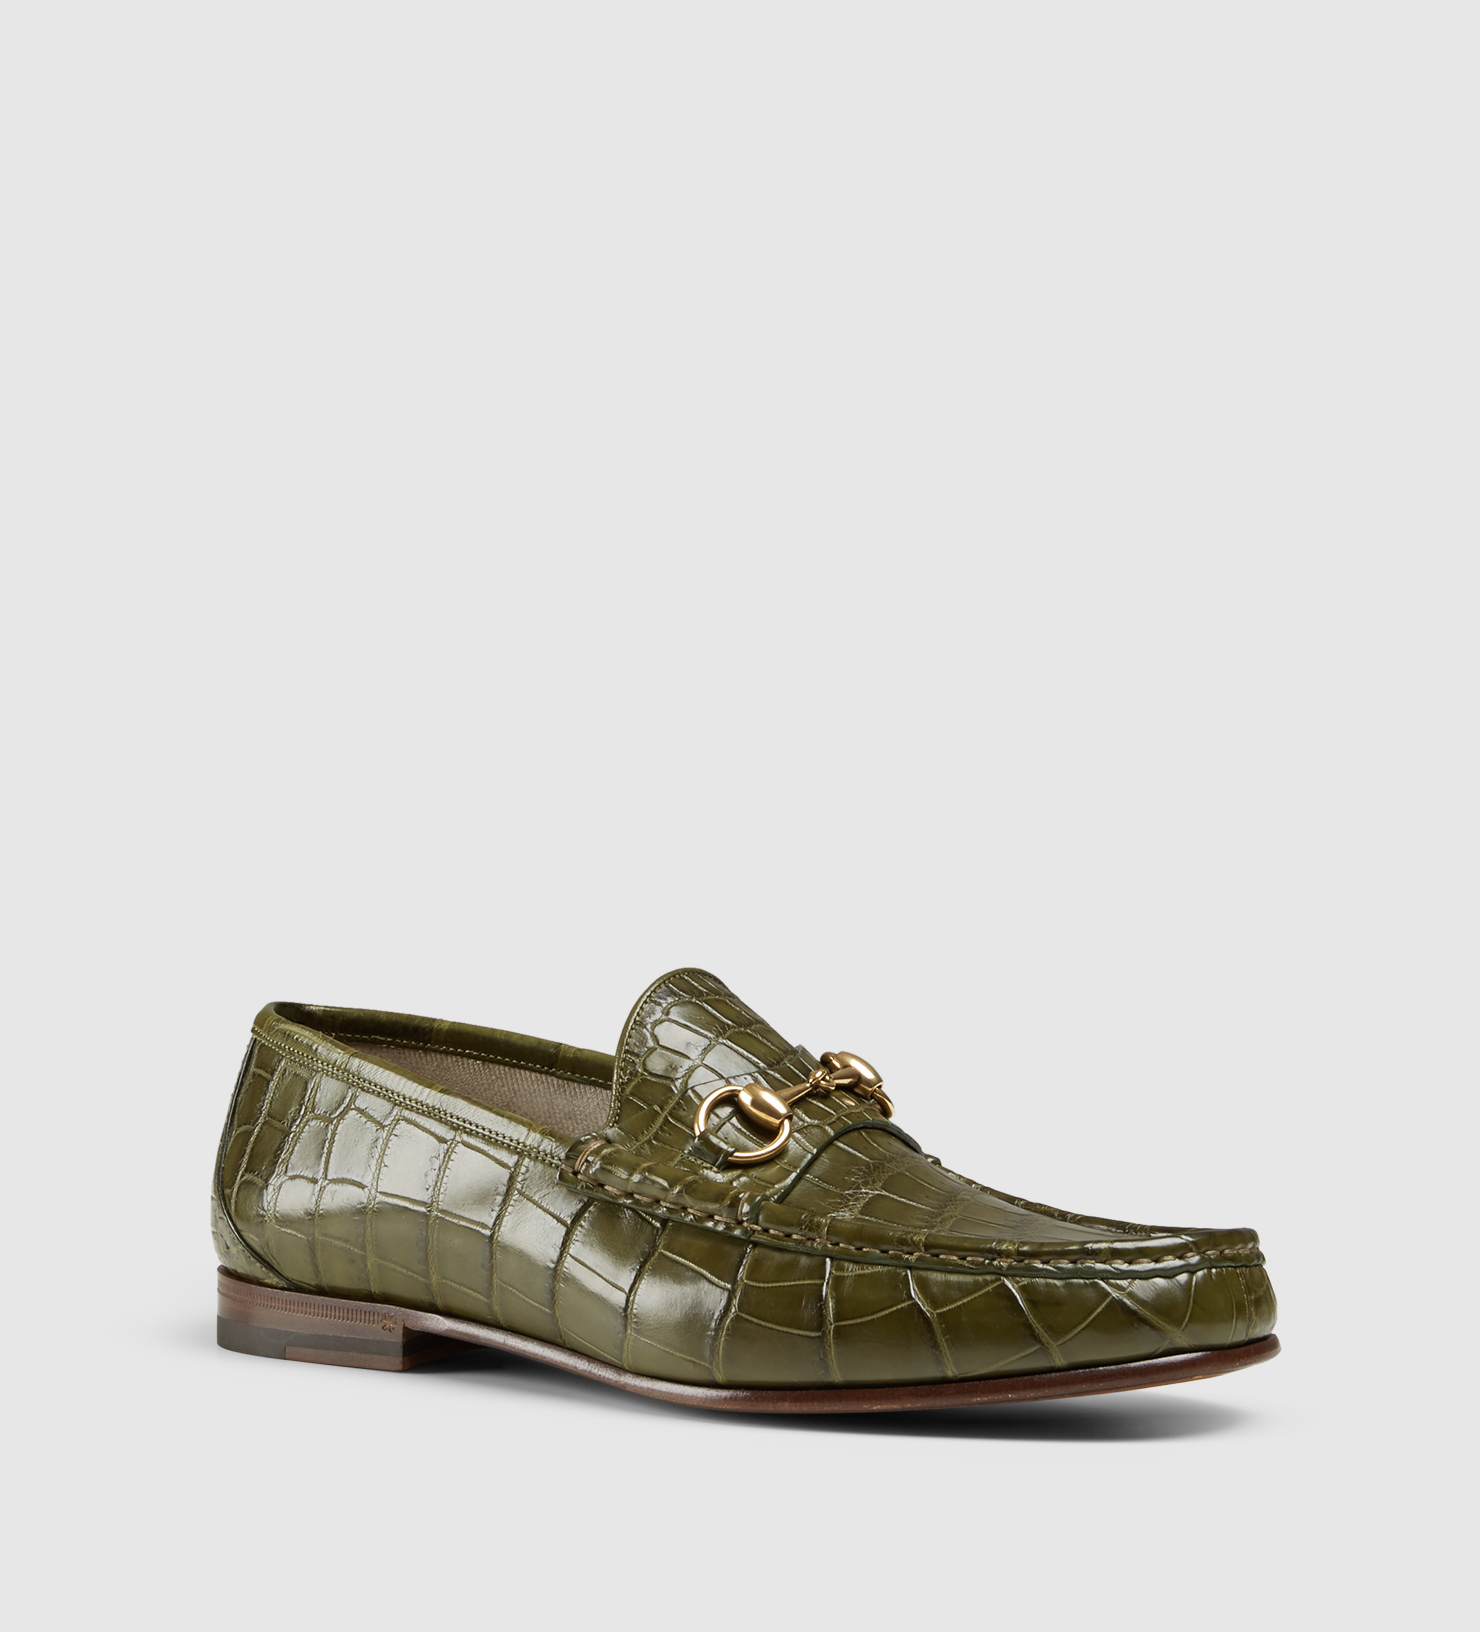 41b764e3e Lyst - Gucci Men's Crocodile 1953 Horsebit Loafer in Green for Men